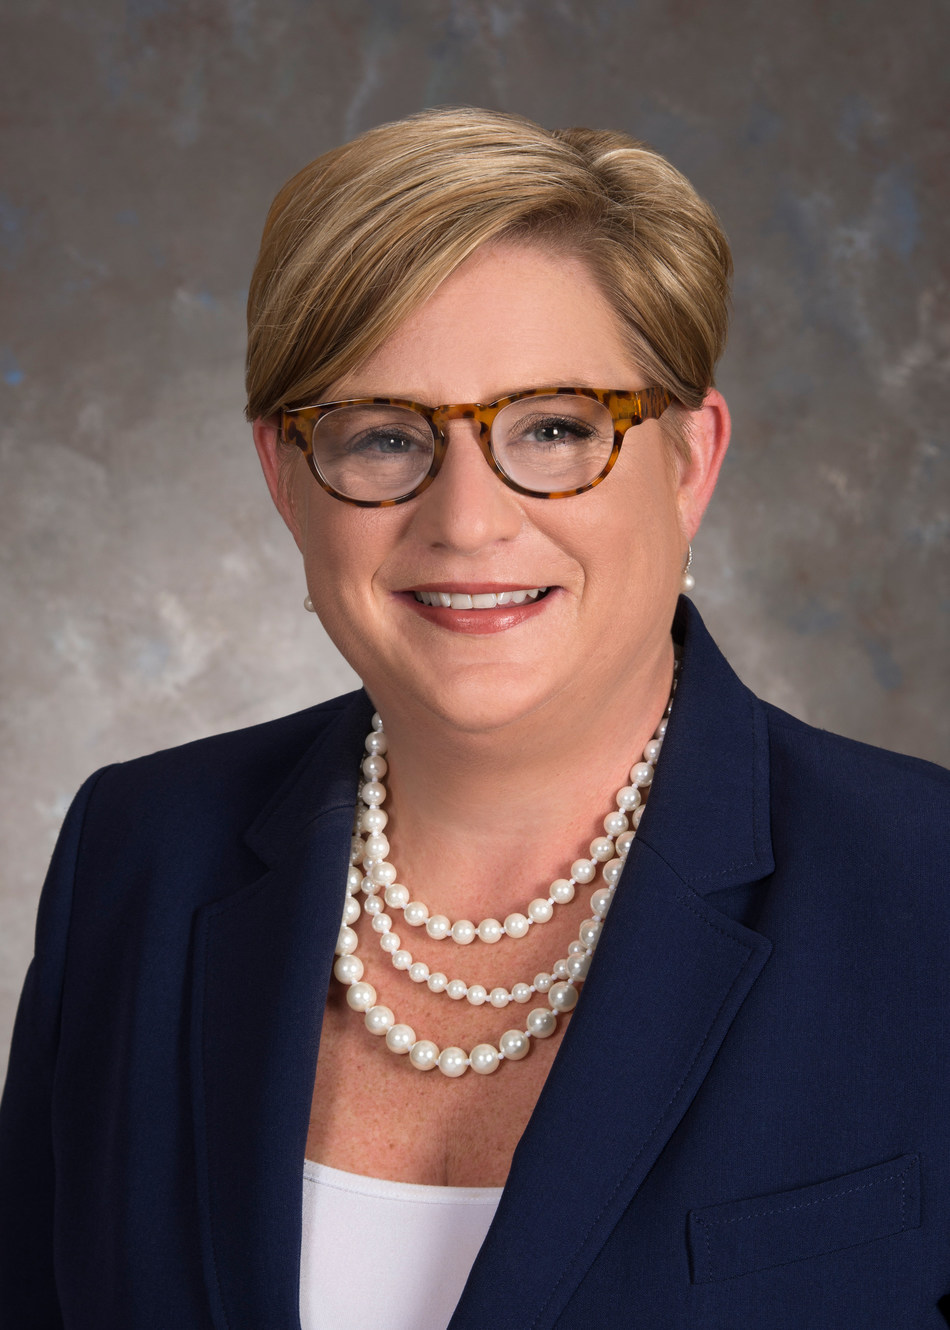 Awarded Argentum's 2017 Executive Director of the Year, Kristen Dalrick has joined Watercrest Senior Living Group as Executive Director of Market Street Memory Care Residence in Tampa, Fla.